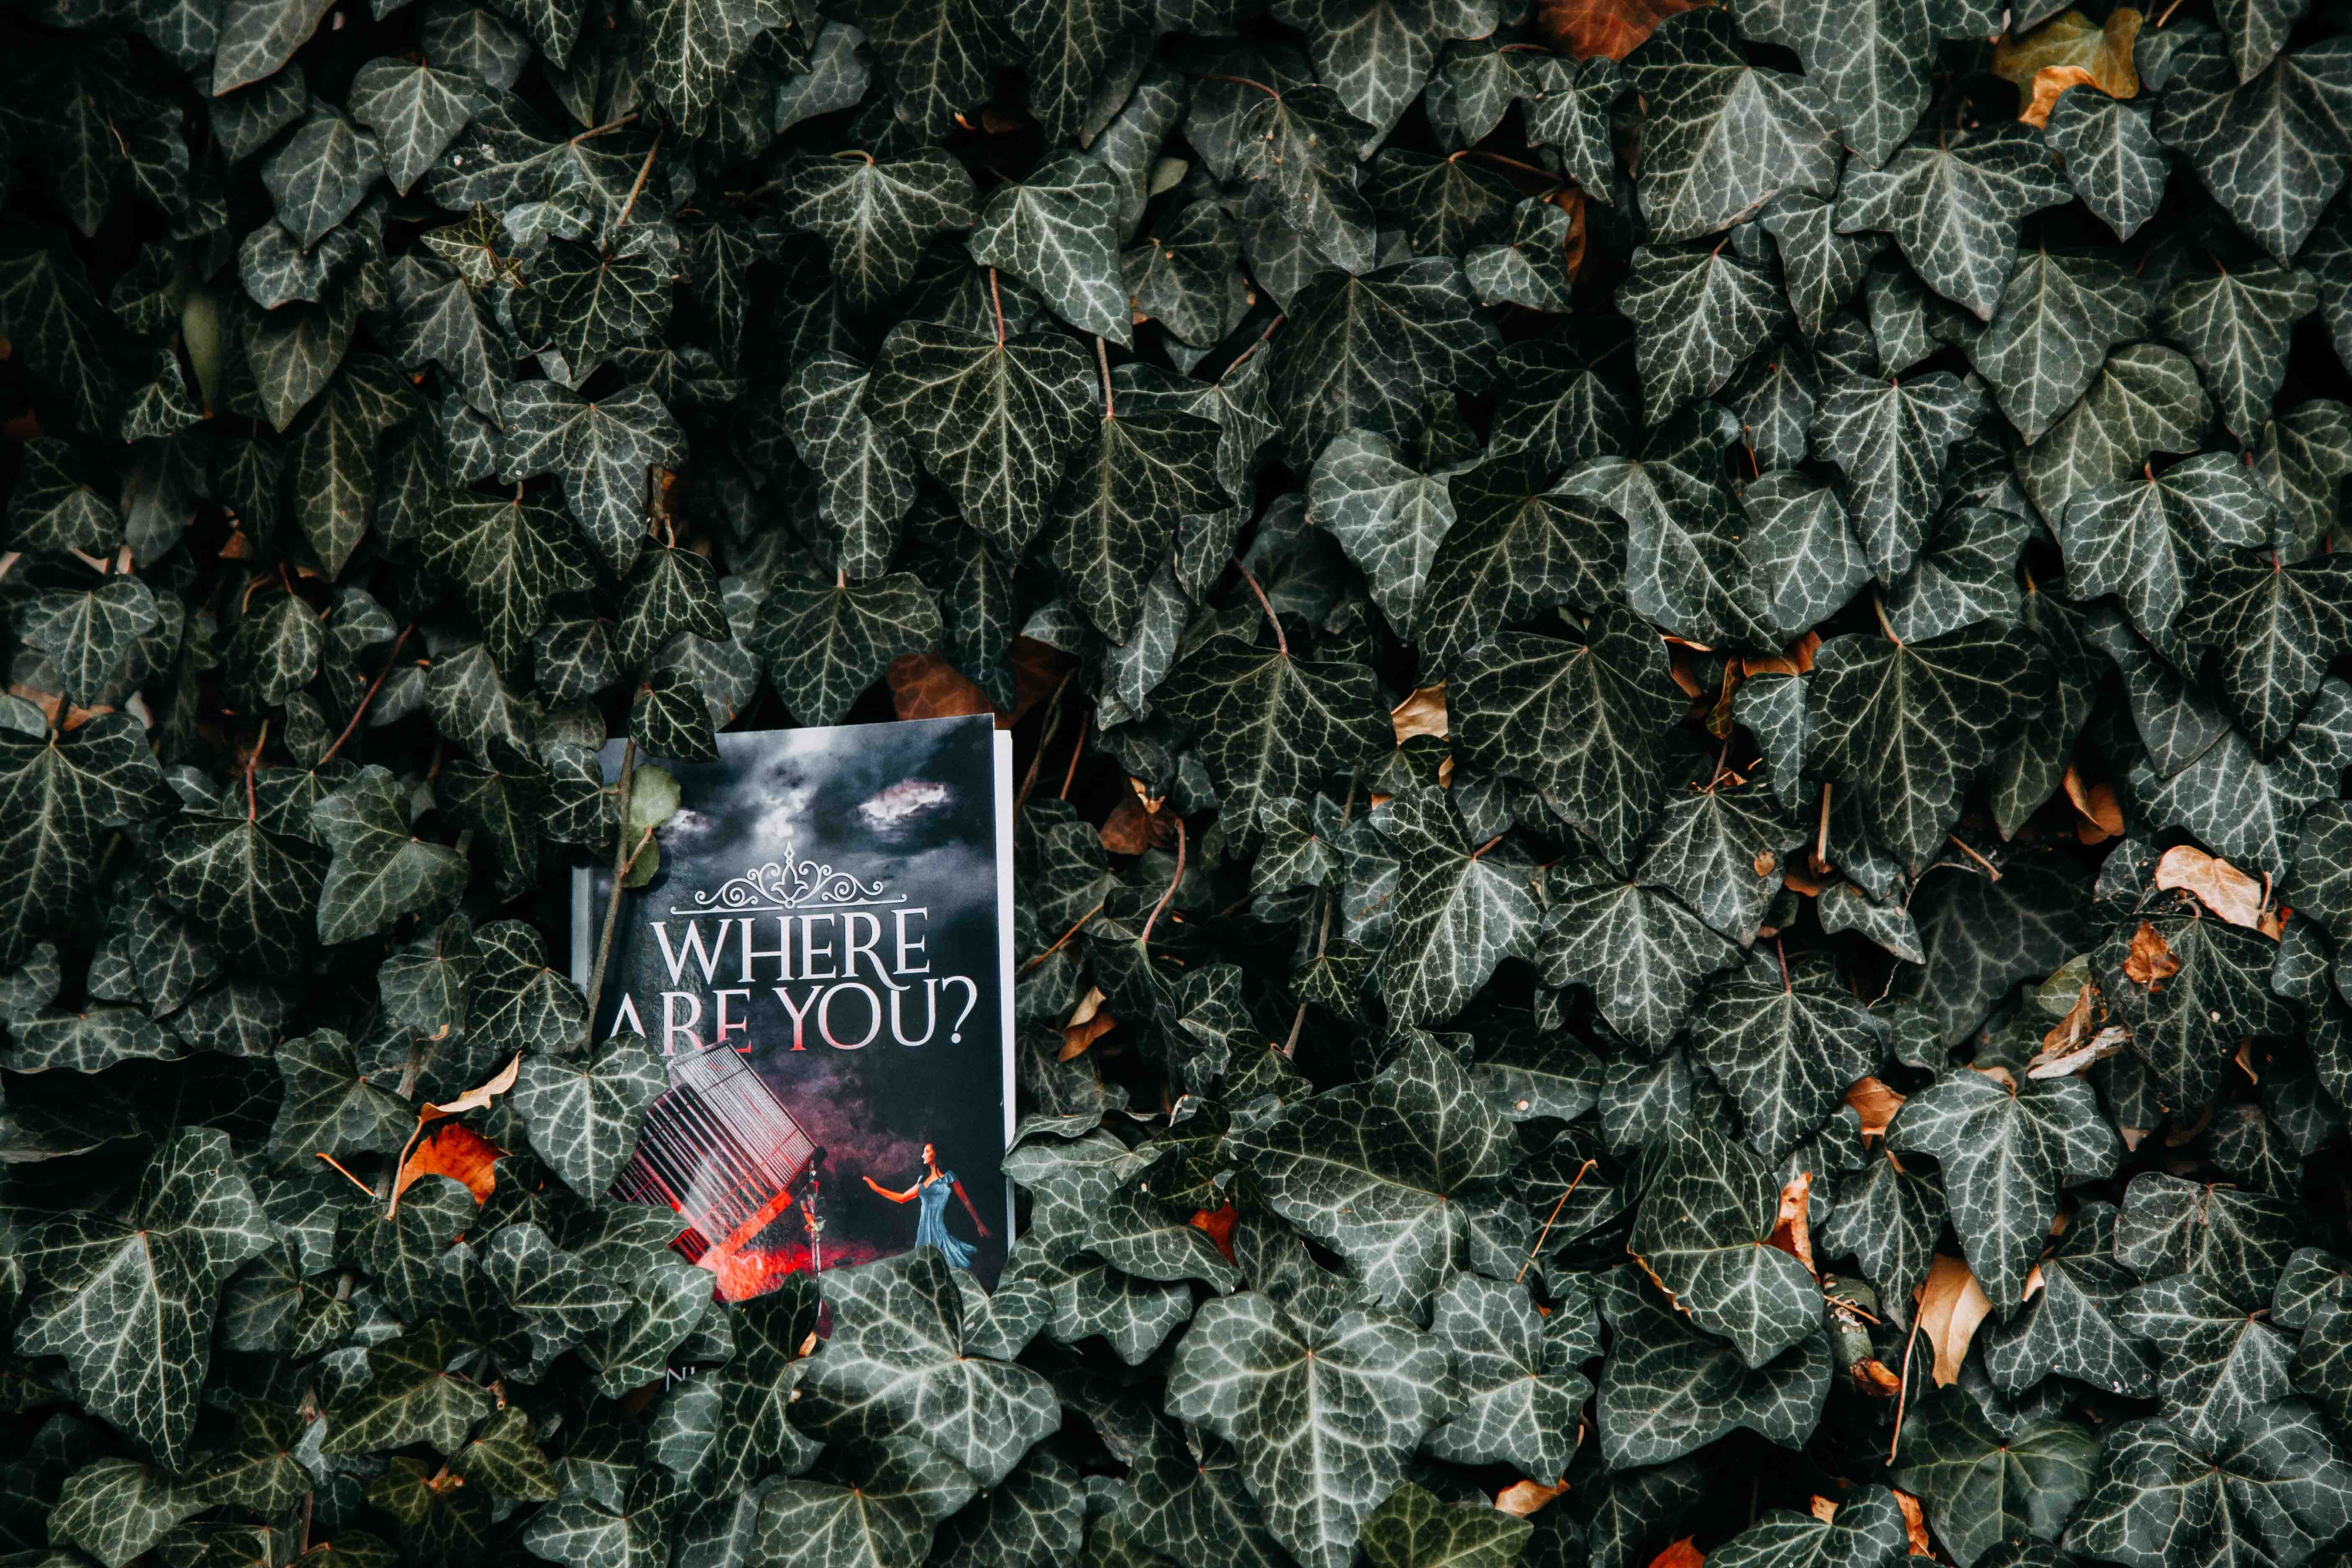 Where Are You? Book on Green Leafed Plants